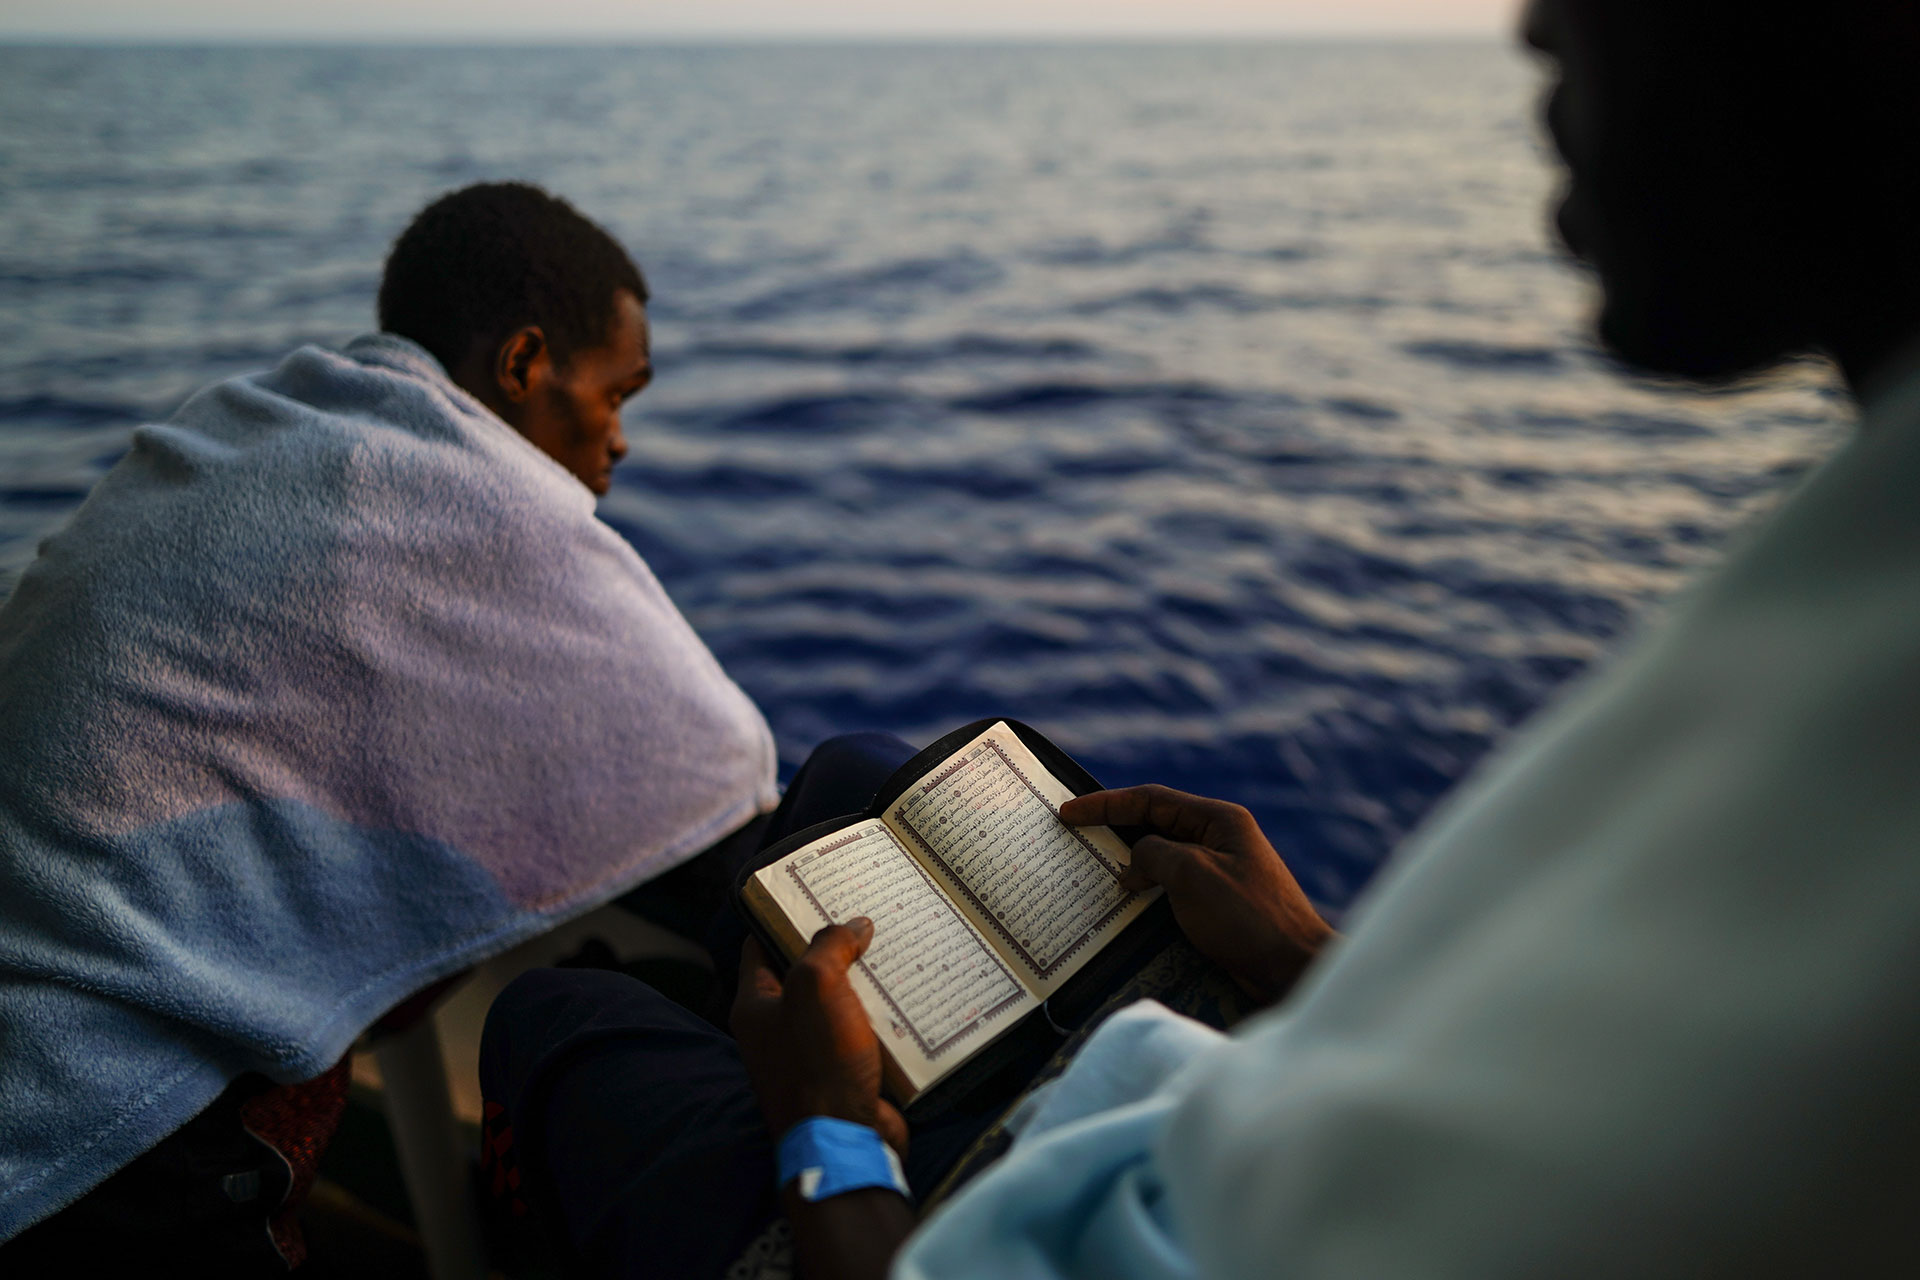 A young man reads the Koran aboard the rescue ship of the NGO Proactiva Open Arms in the central Mediterranean Sea on 3 August 2018.